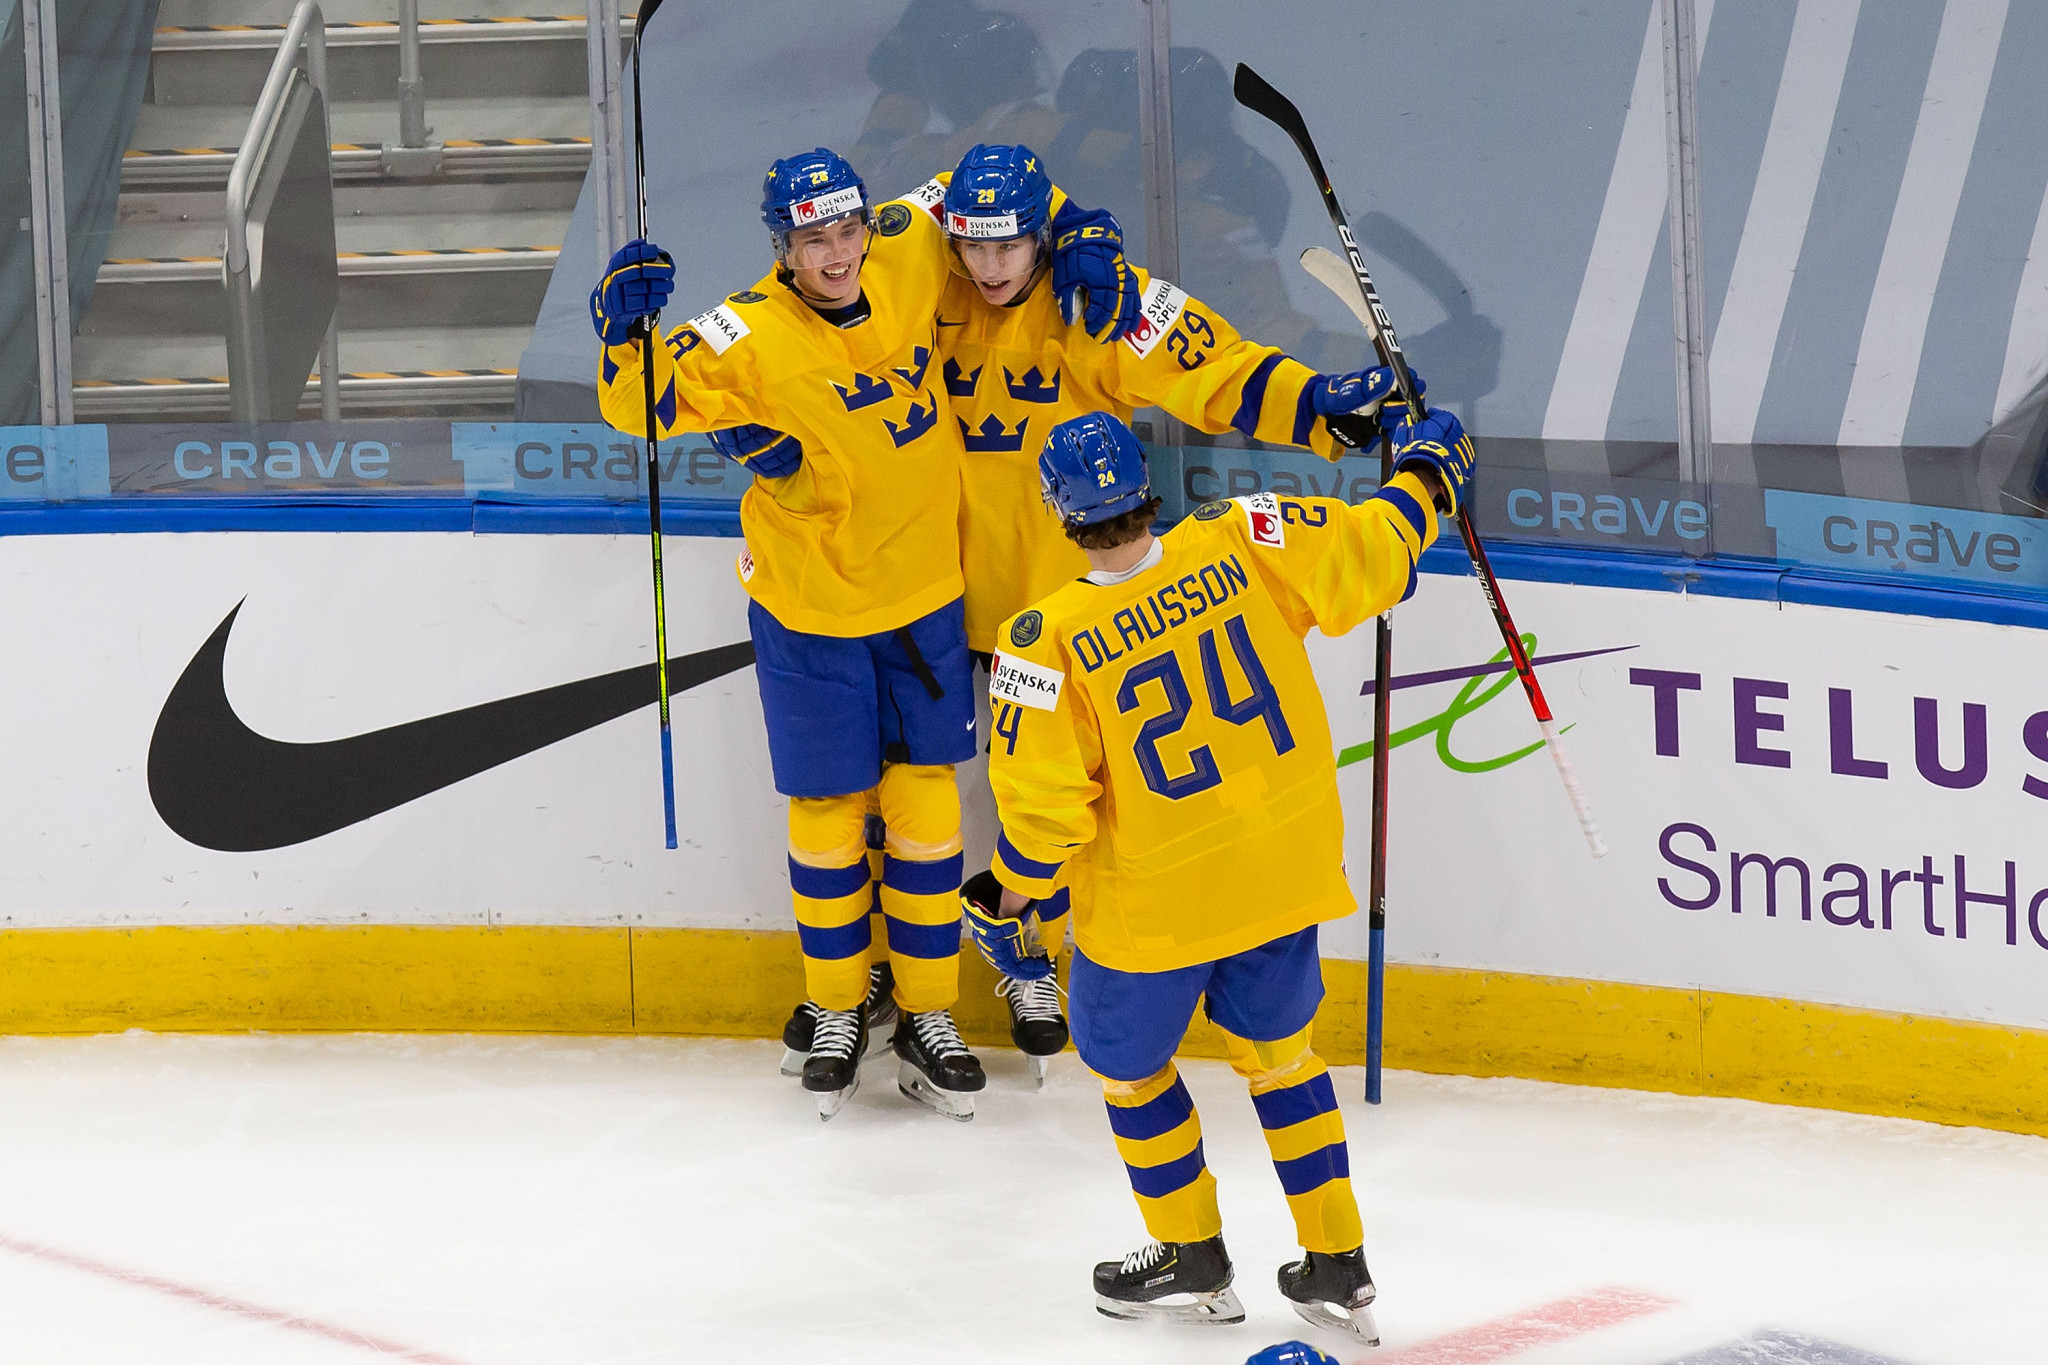 New principles for youth development have been adopted by the Swedish Ice Hockey Association ©Getty Images